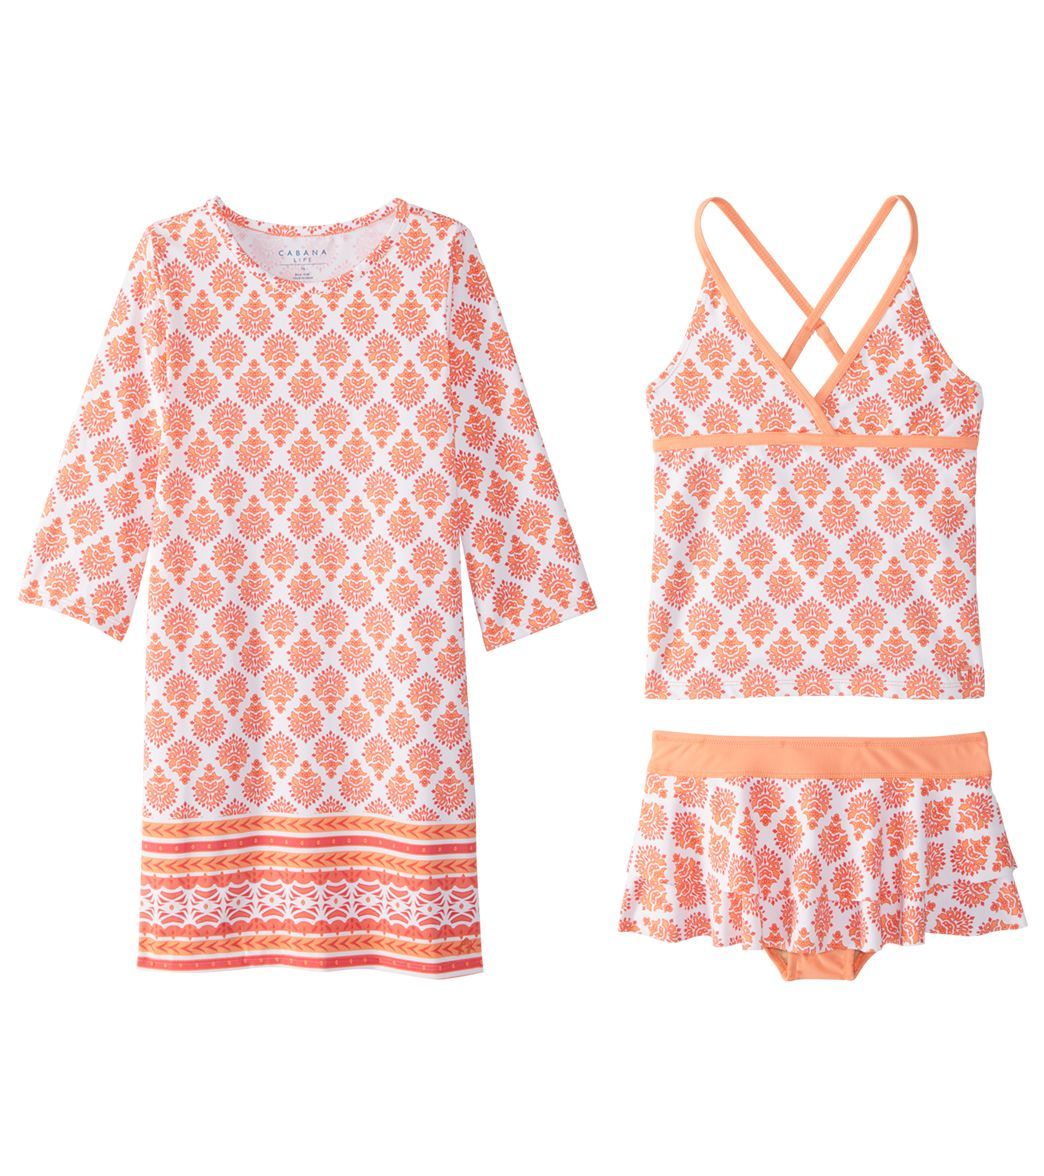 8009b0cfa2 Cabana Life Girls' UPF 50+ Nantucket Sound Swimsuit & Cover Up Set ...